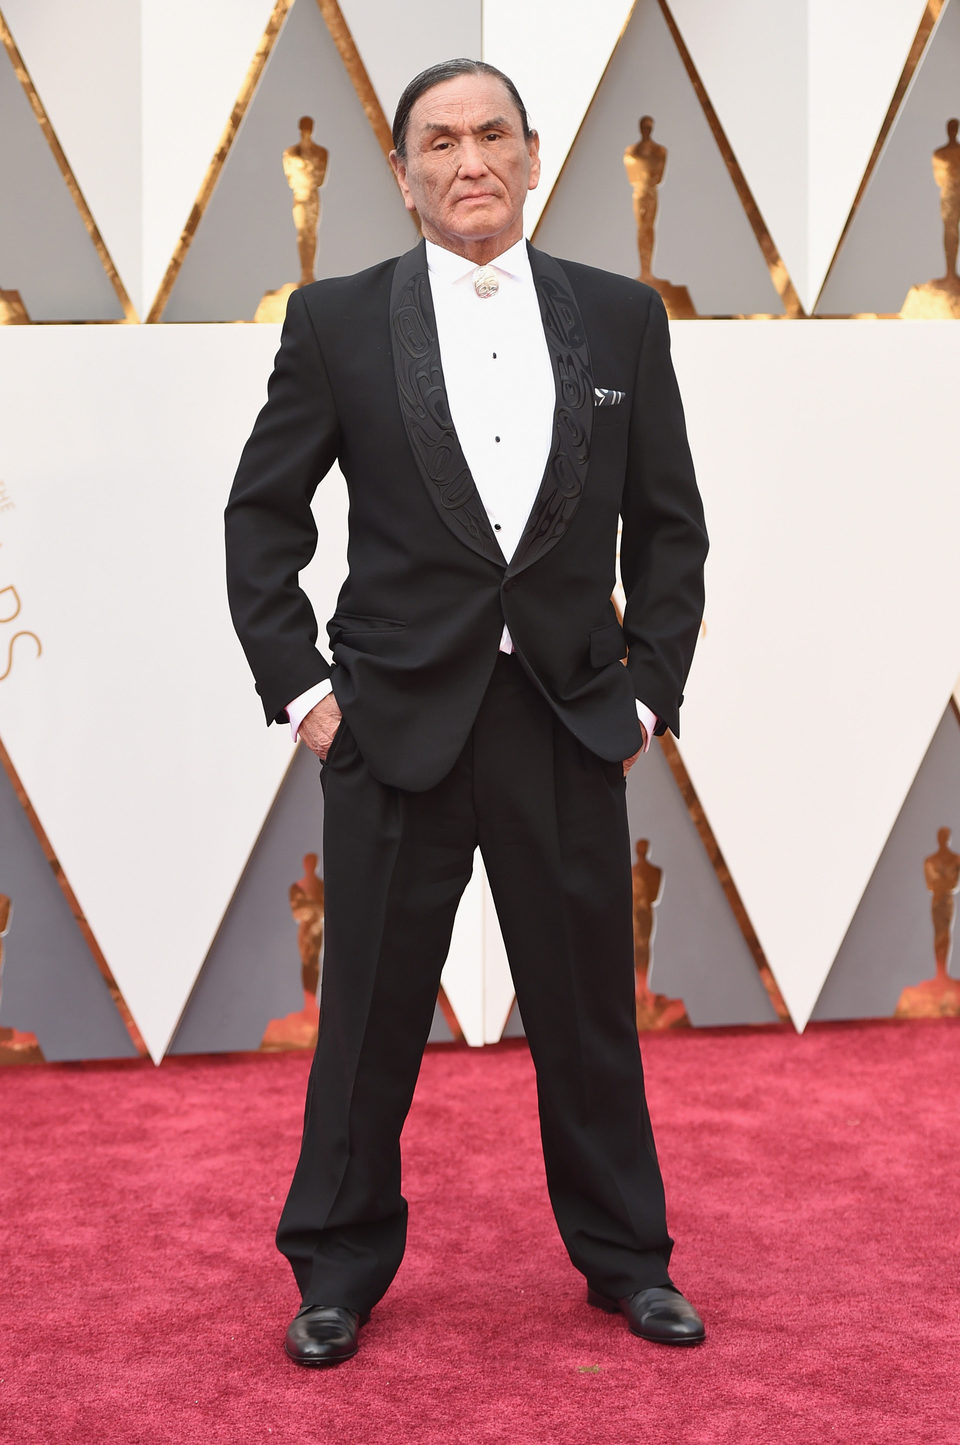 Duane Howard at the Oscars 2016 red carpet